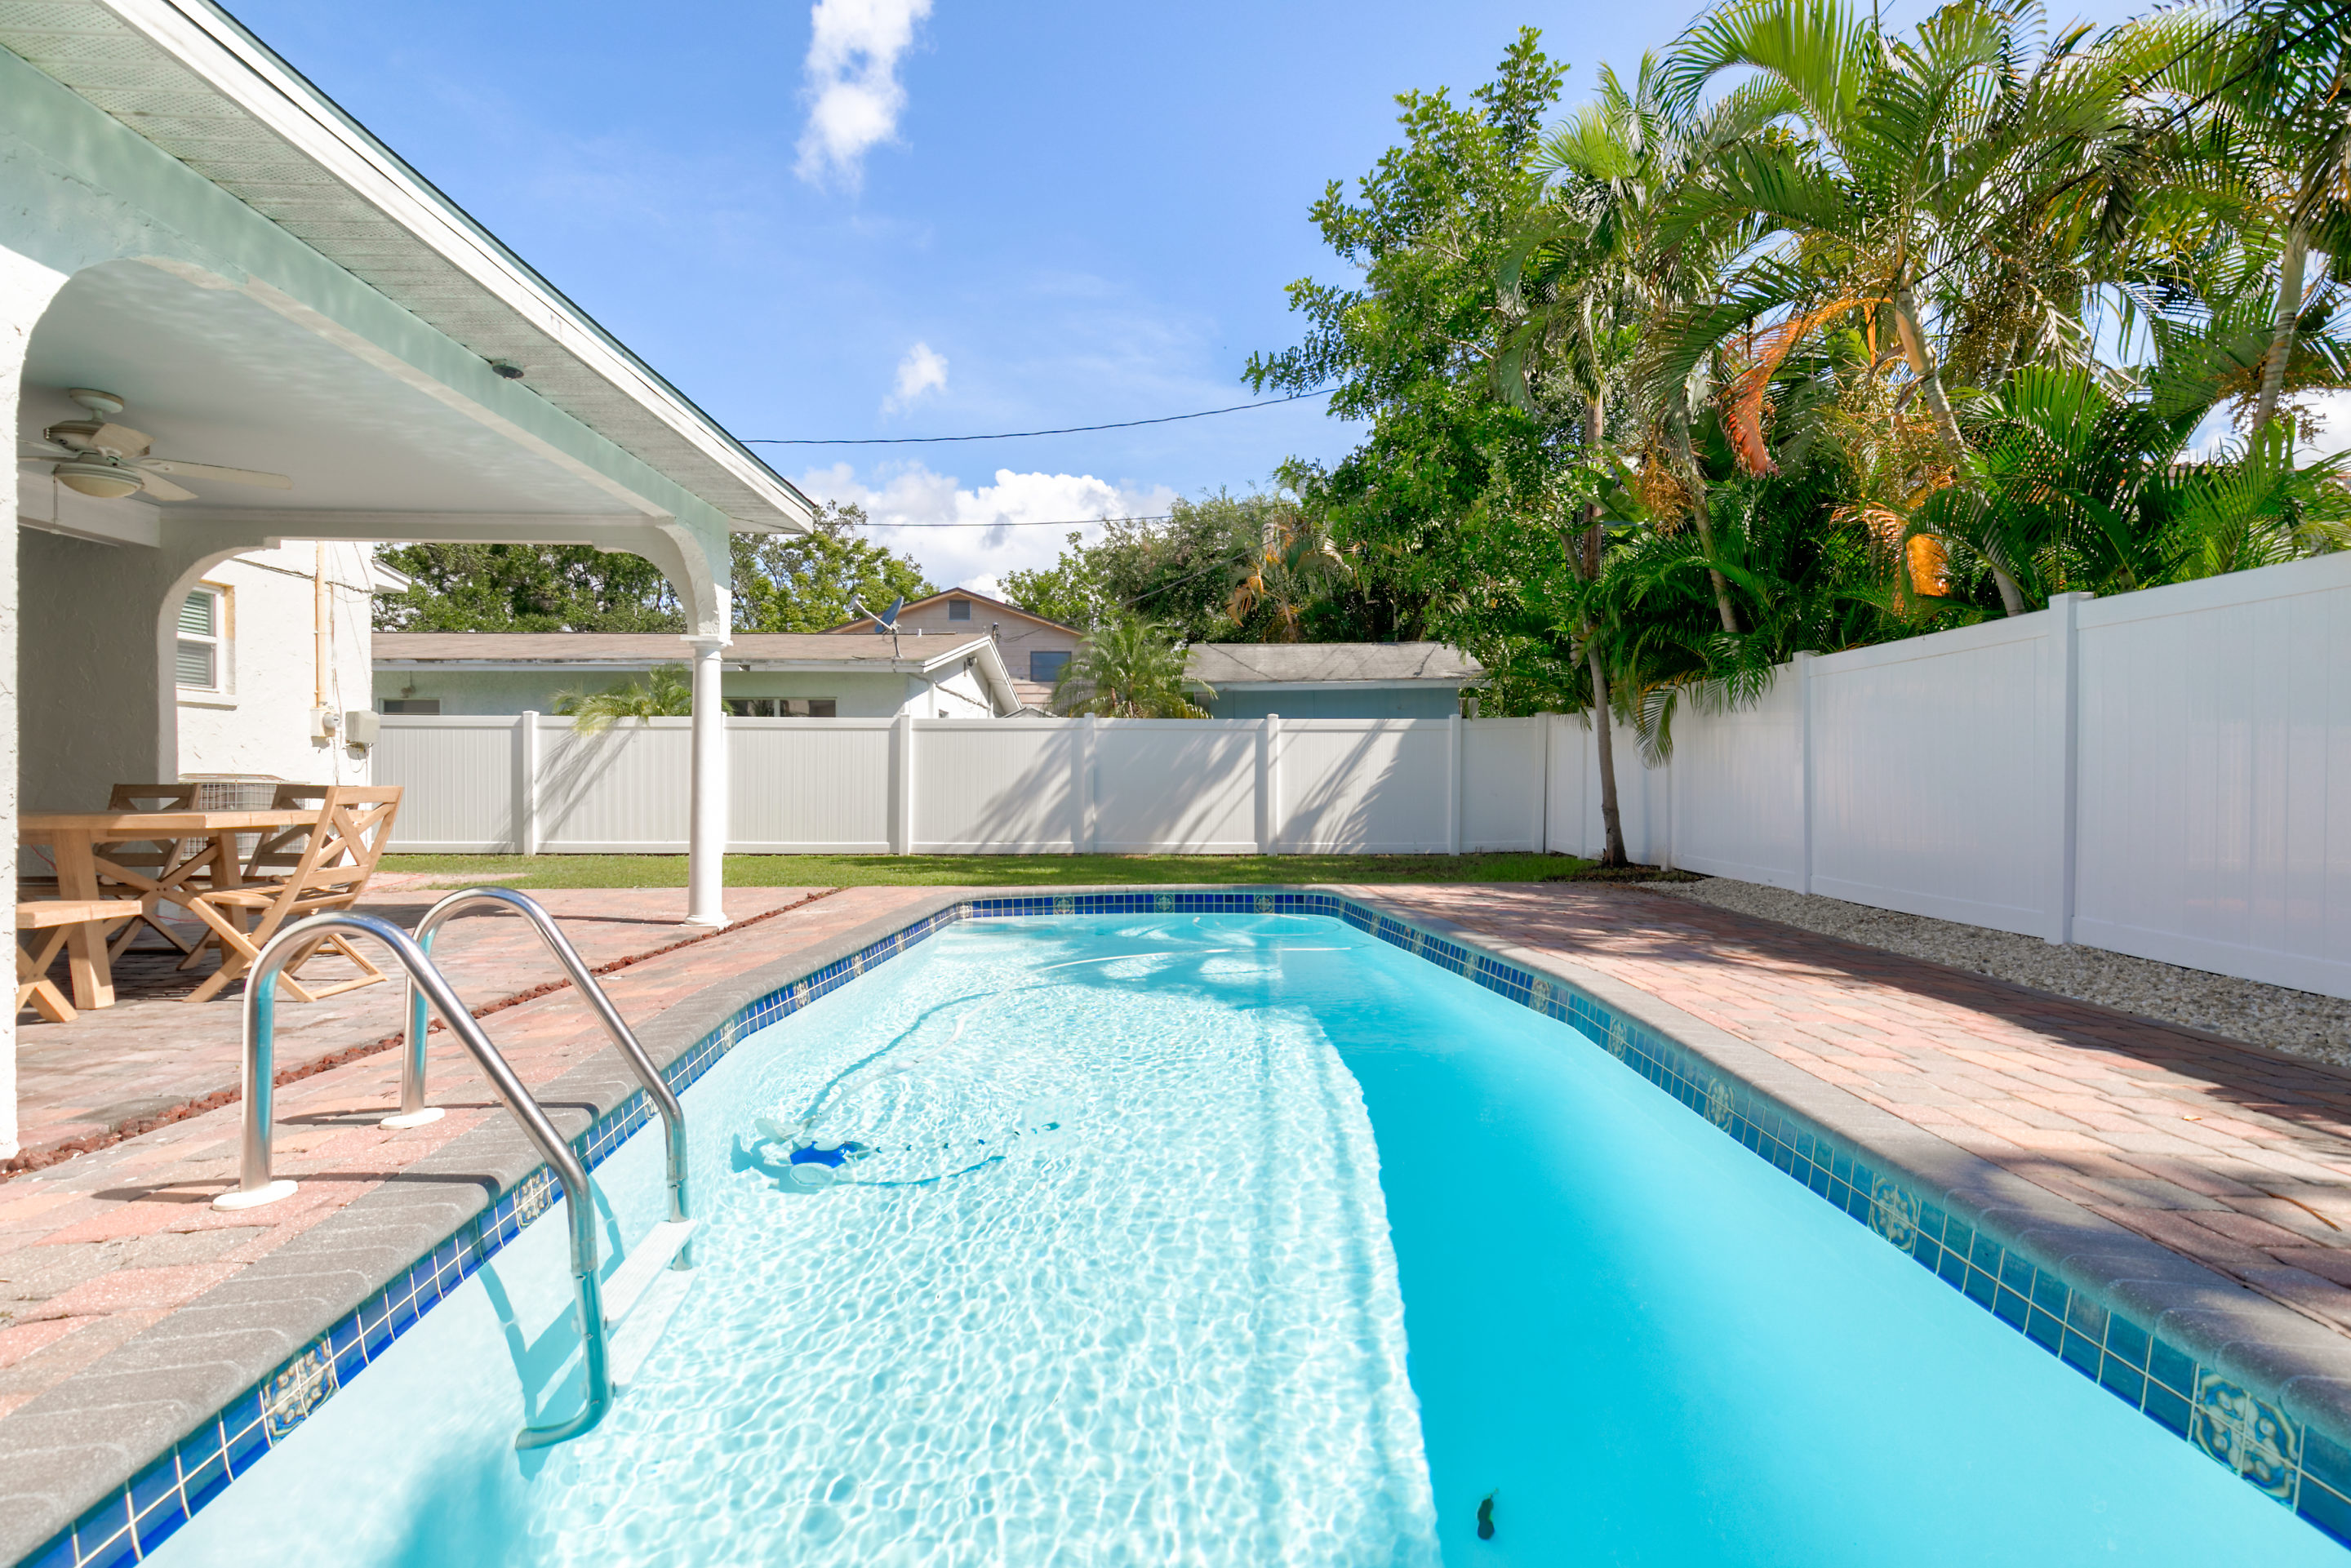 Pool-Home-at-409-Erie-Ave-on-Davis-Islands-Cristan-Fadal